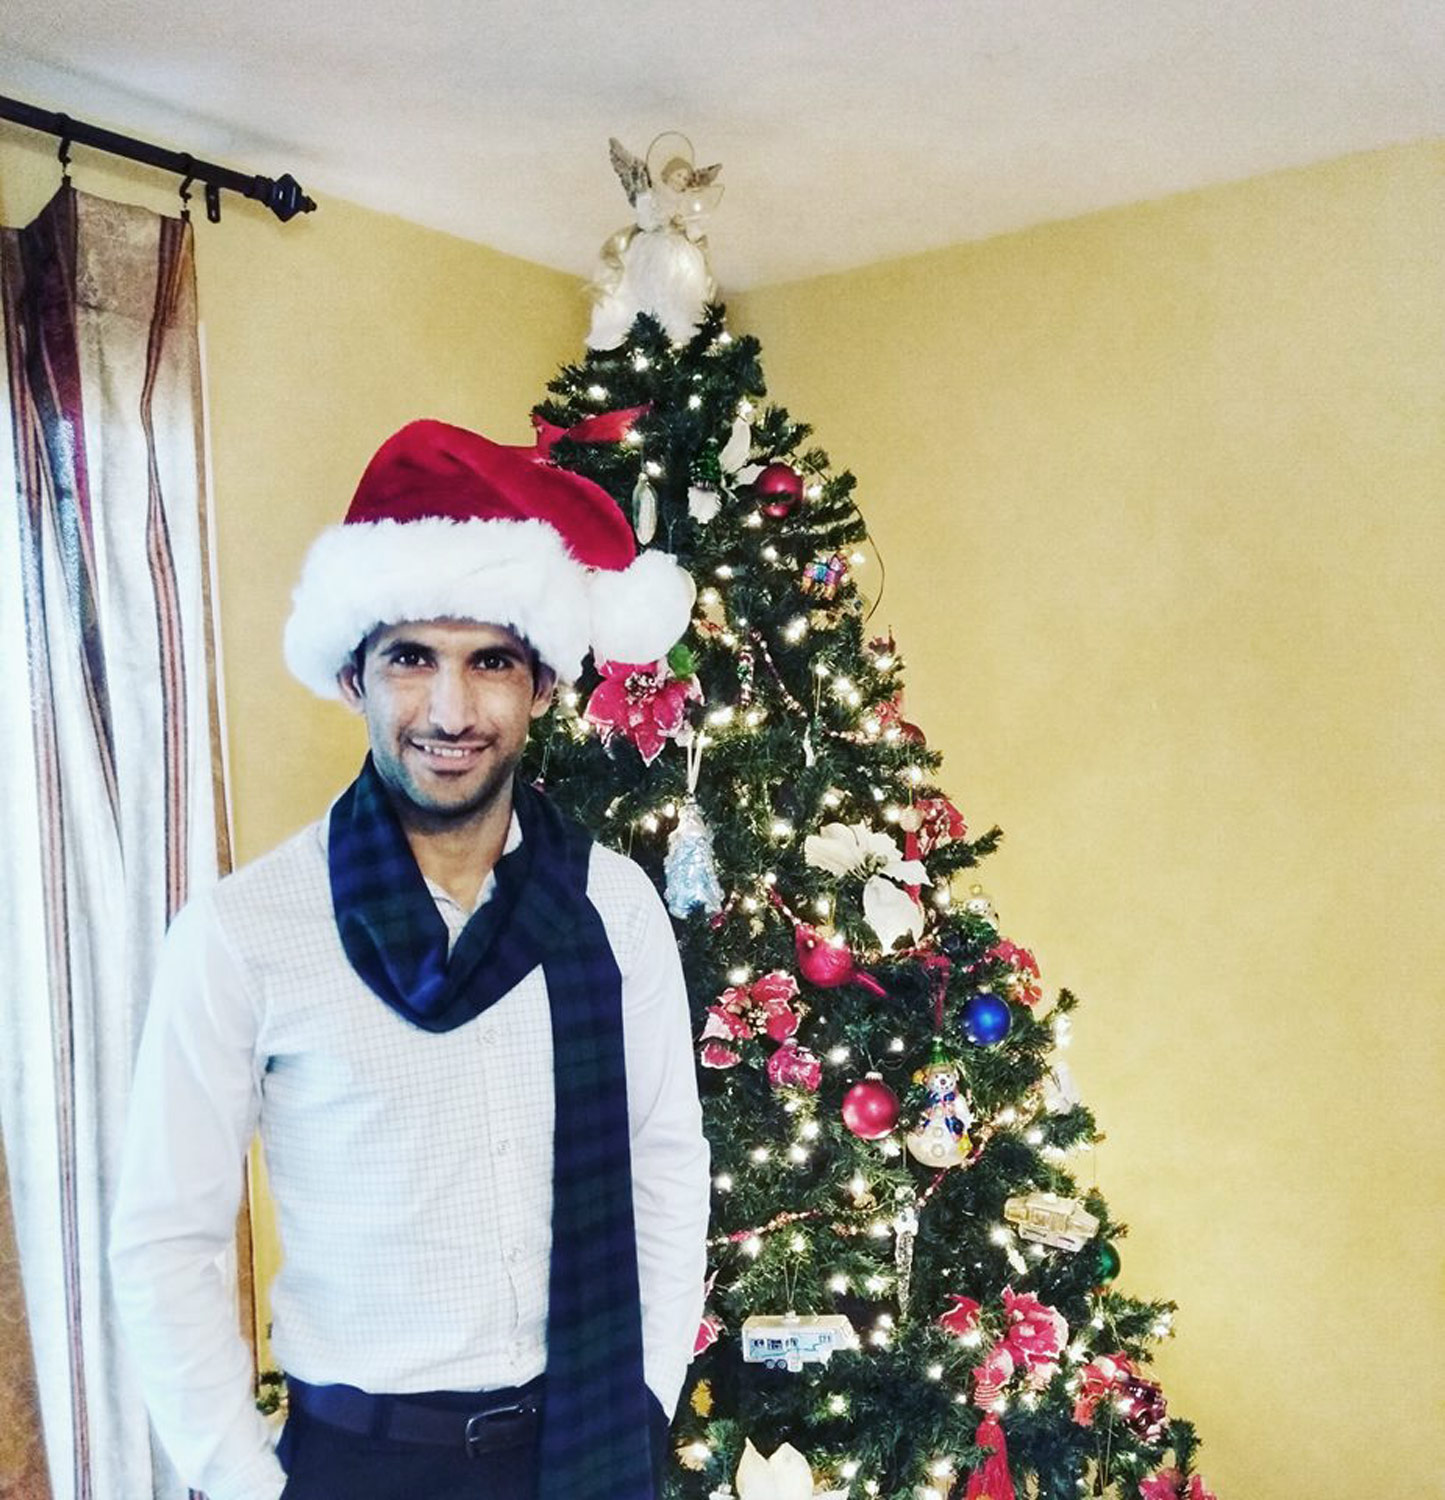 Muhammad Tariq celebrates his first Christmas in Medford Oregon